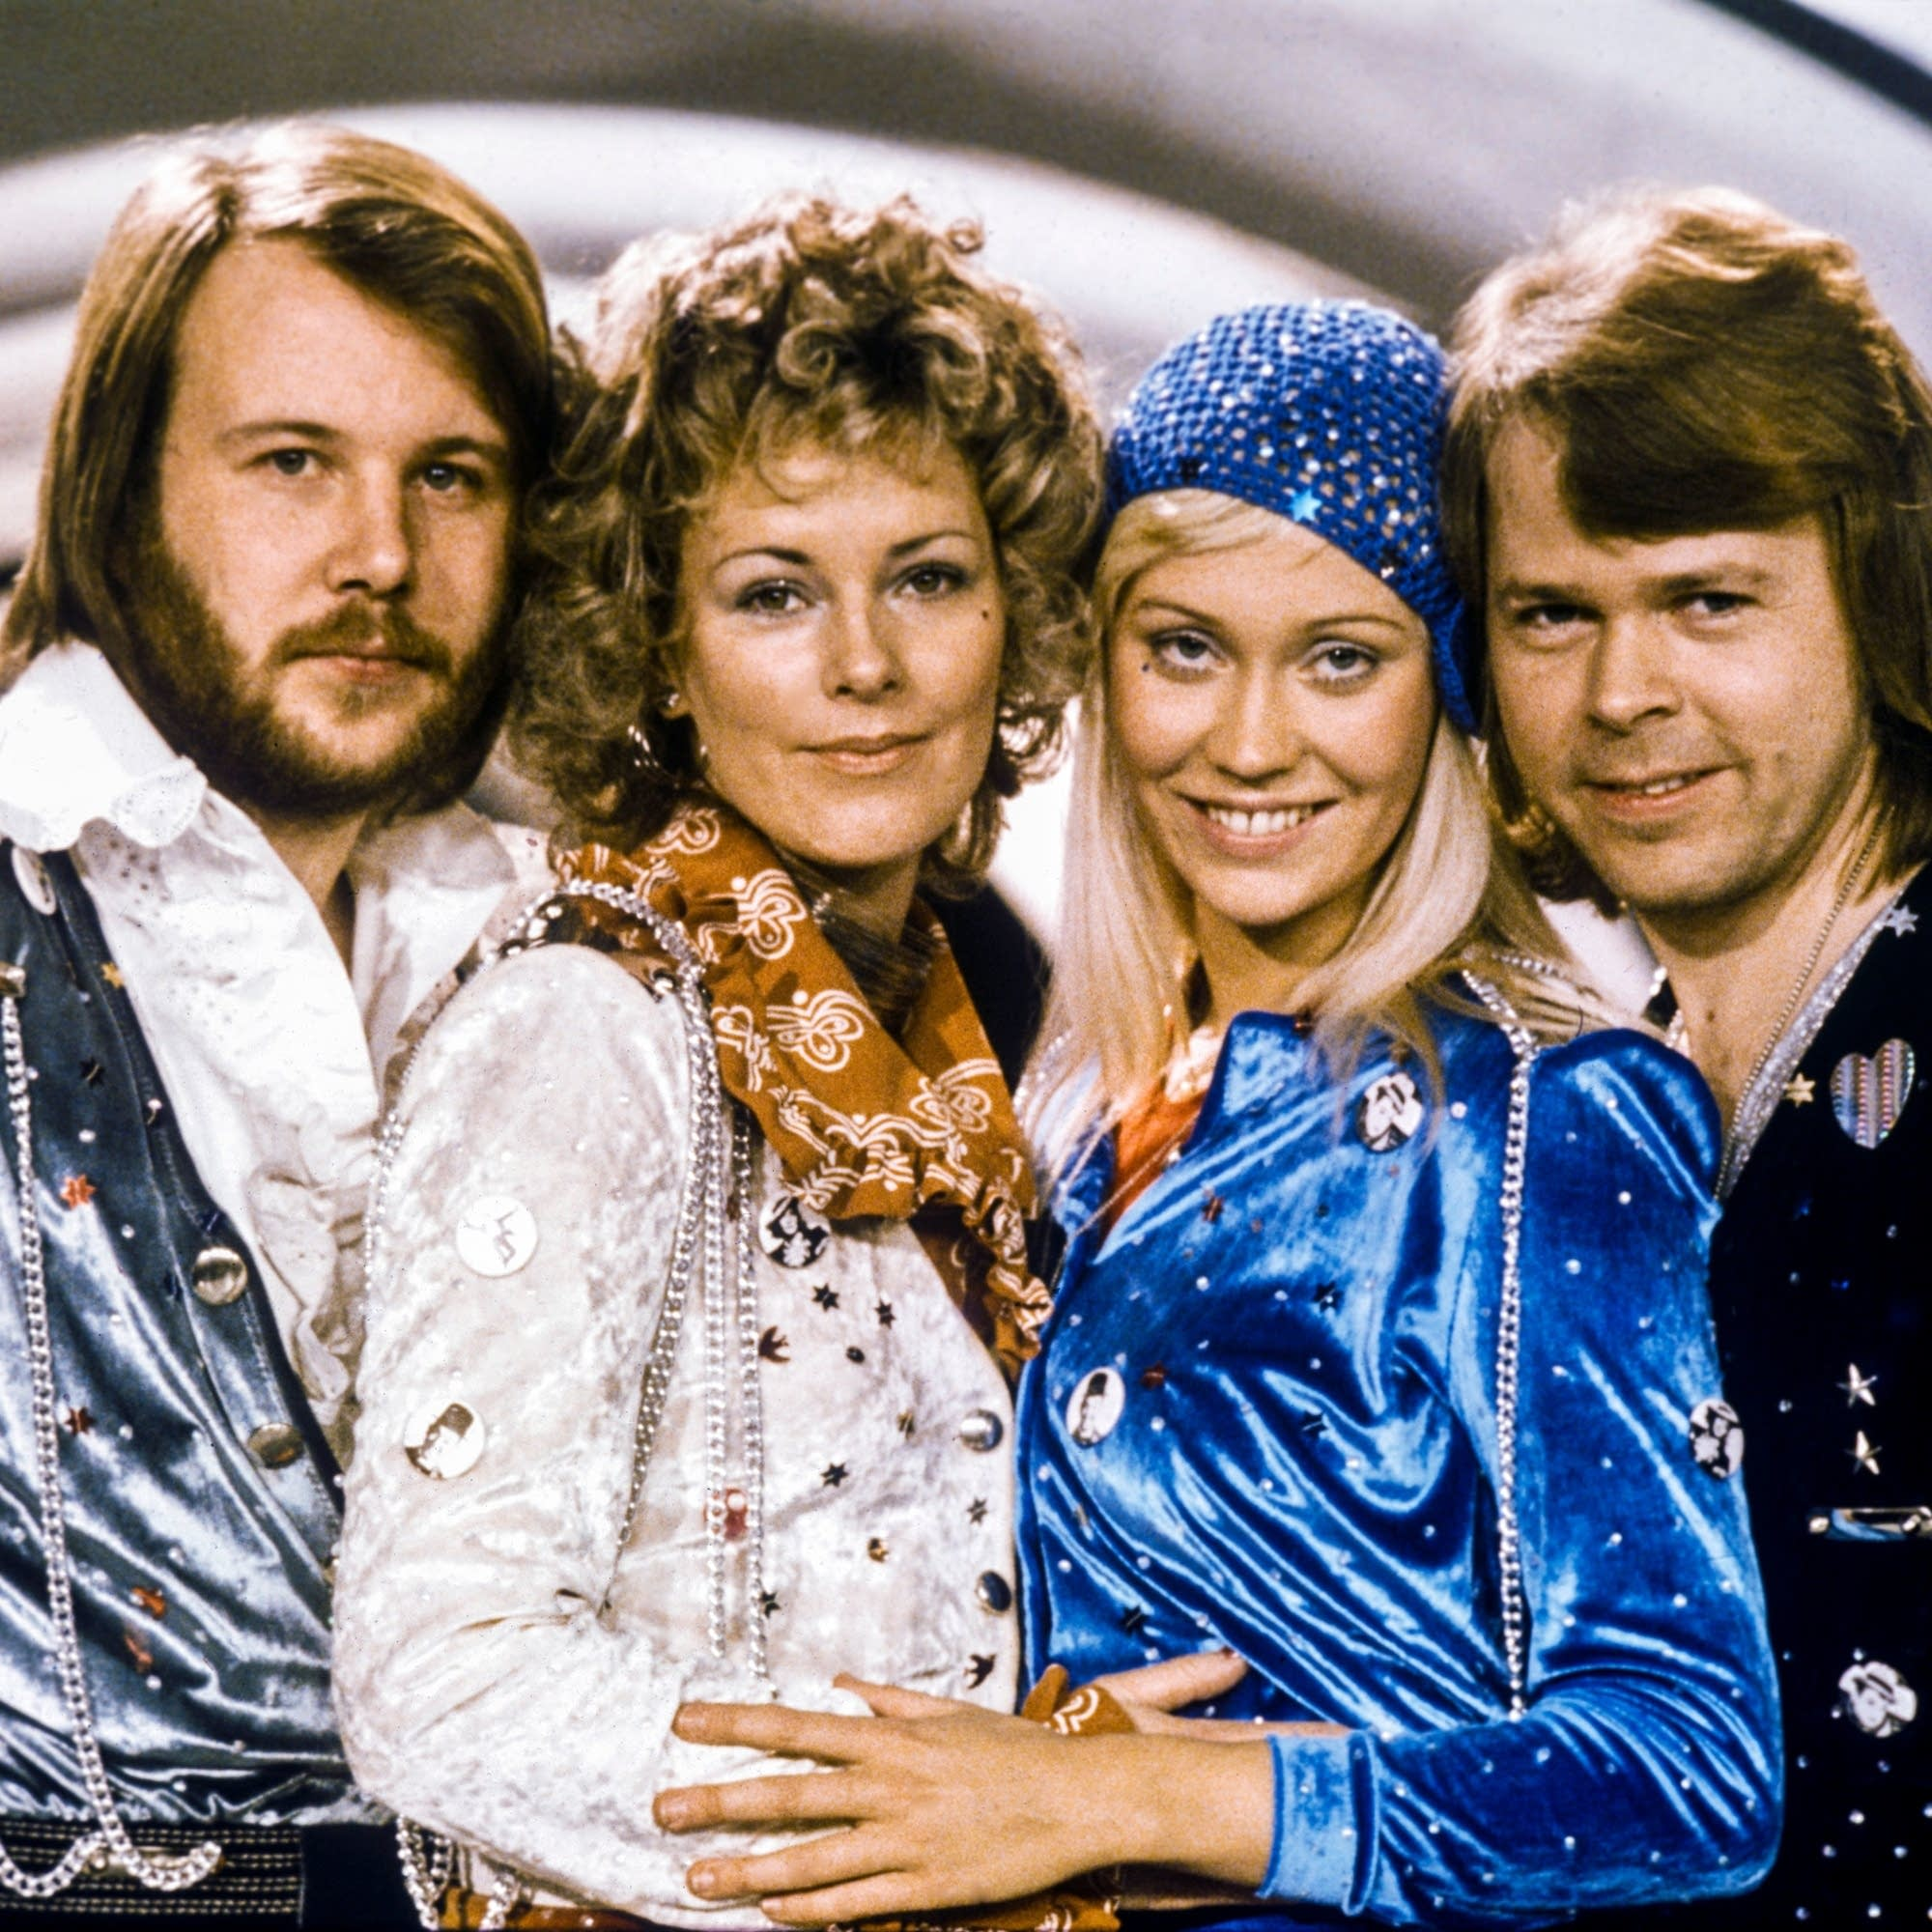 ABBA in the 1970s